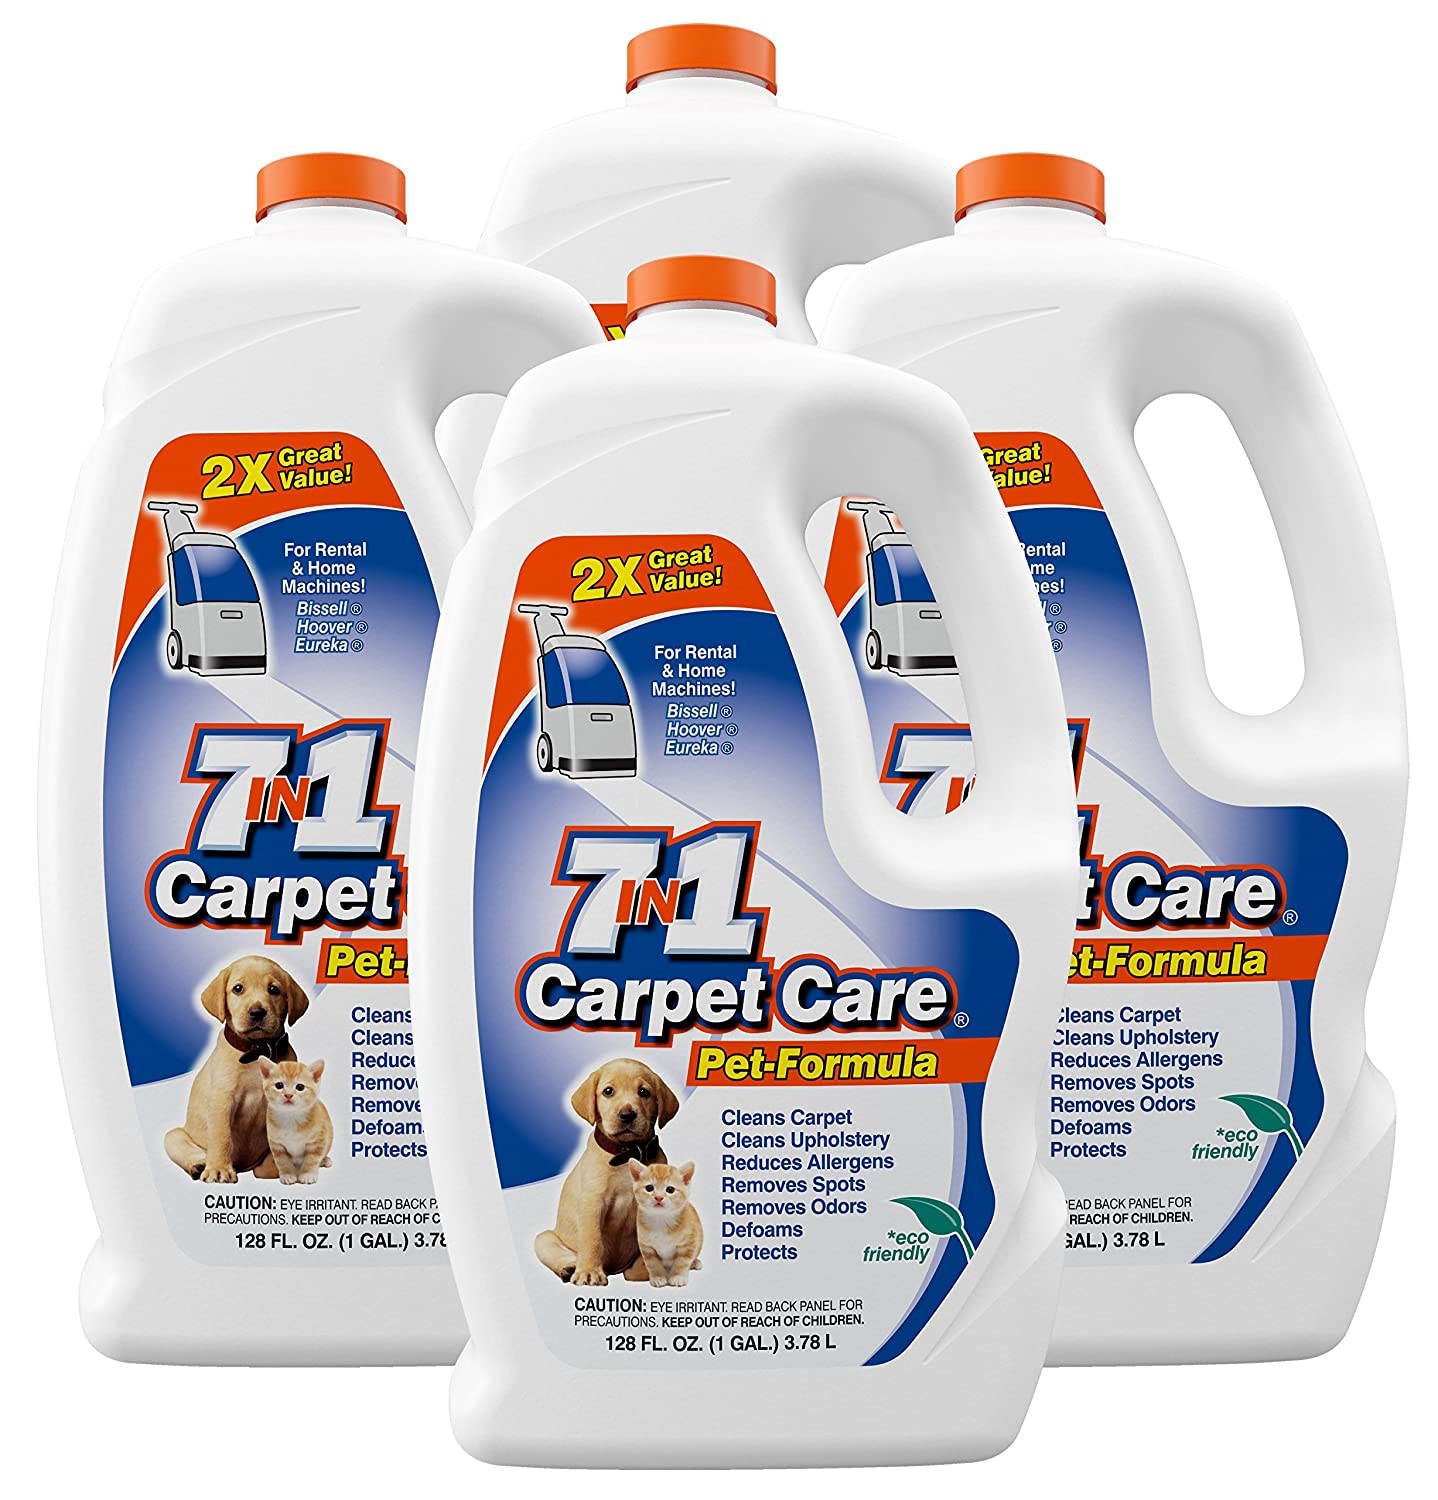 7in1 Carpet Care Pet Formula Carpet Cleaning Solution (1 Pack) Kent Investment Corp